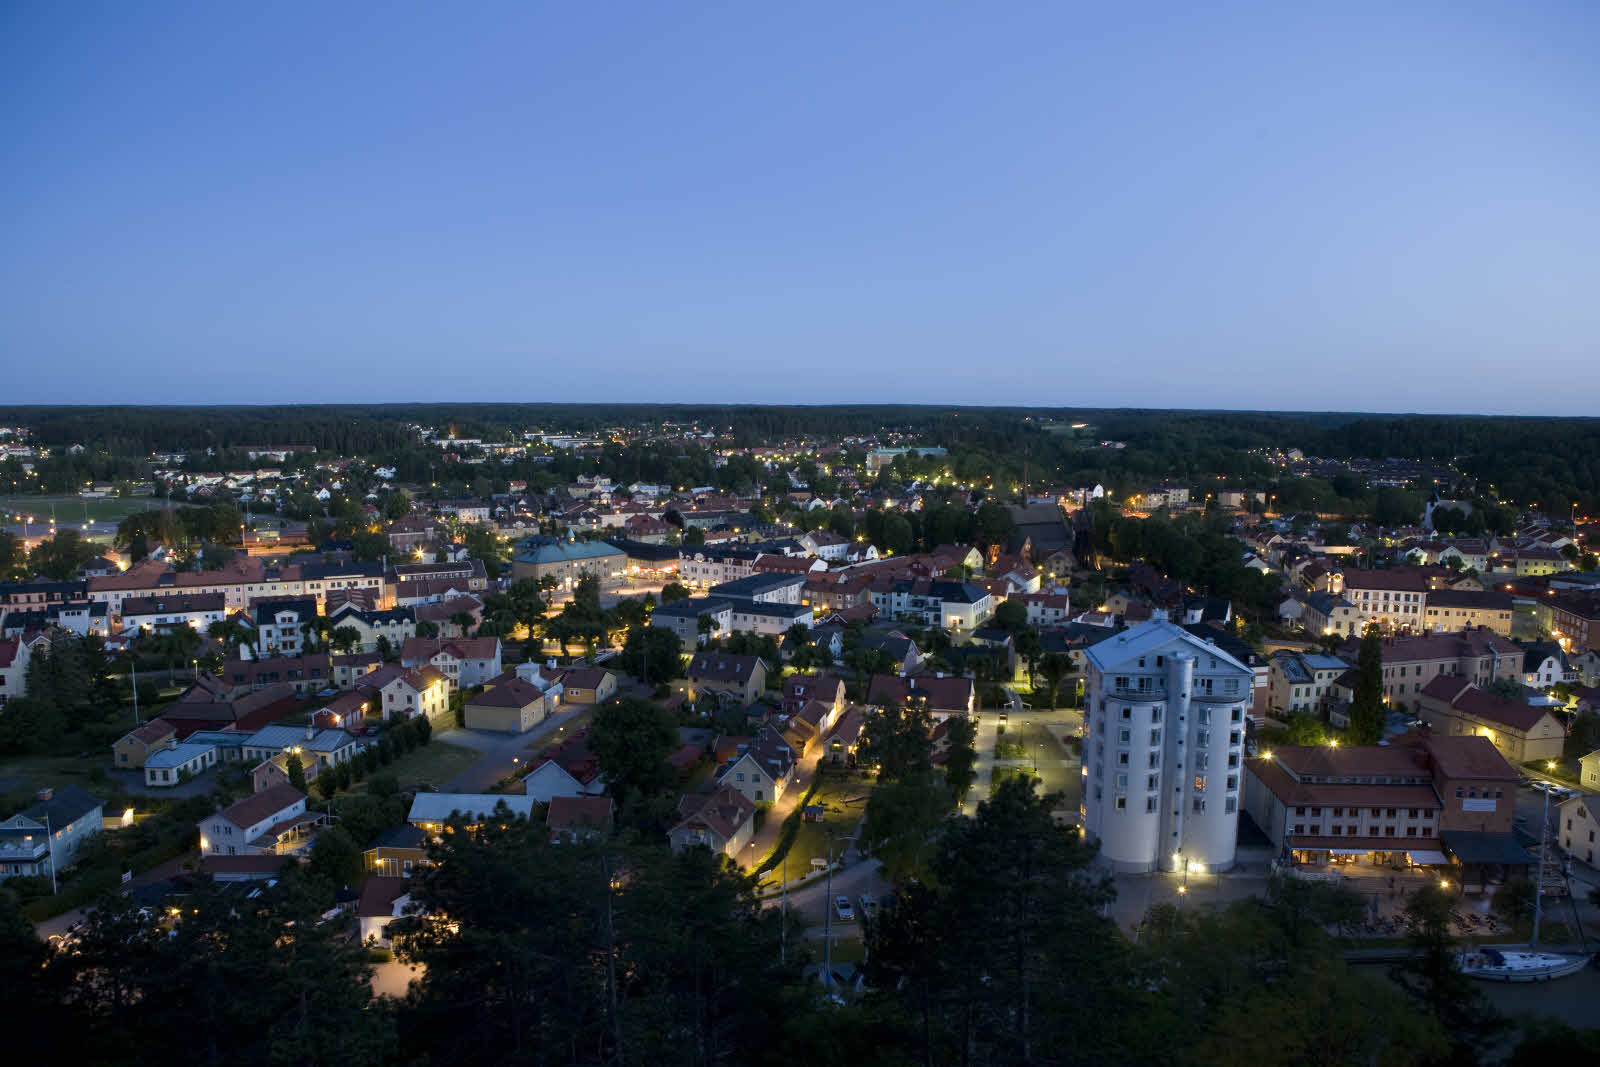 View of Söderköping lit up at night.